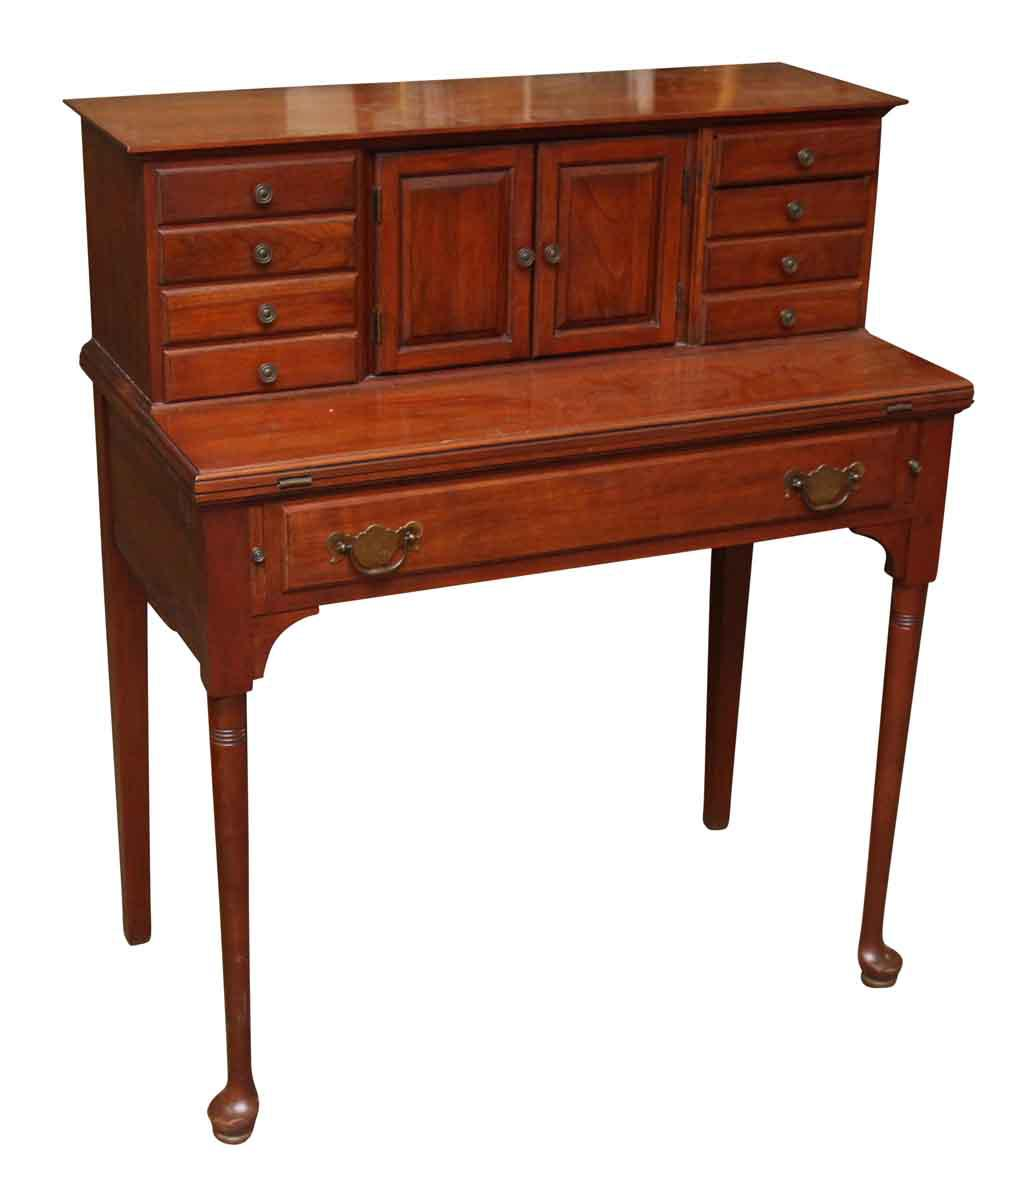 Ordinaire Up For Sale Is This Gorgeous Traditional Desk. Made By The Pennsylvania  House.